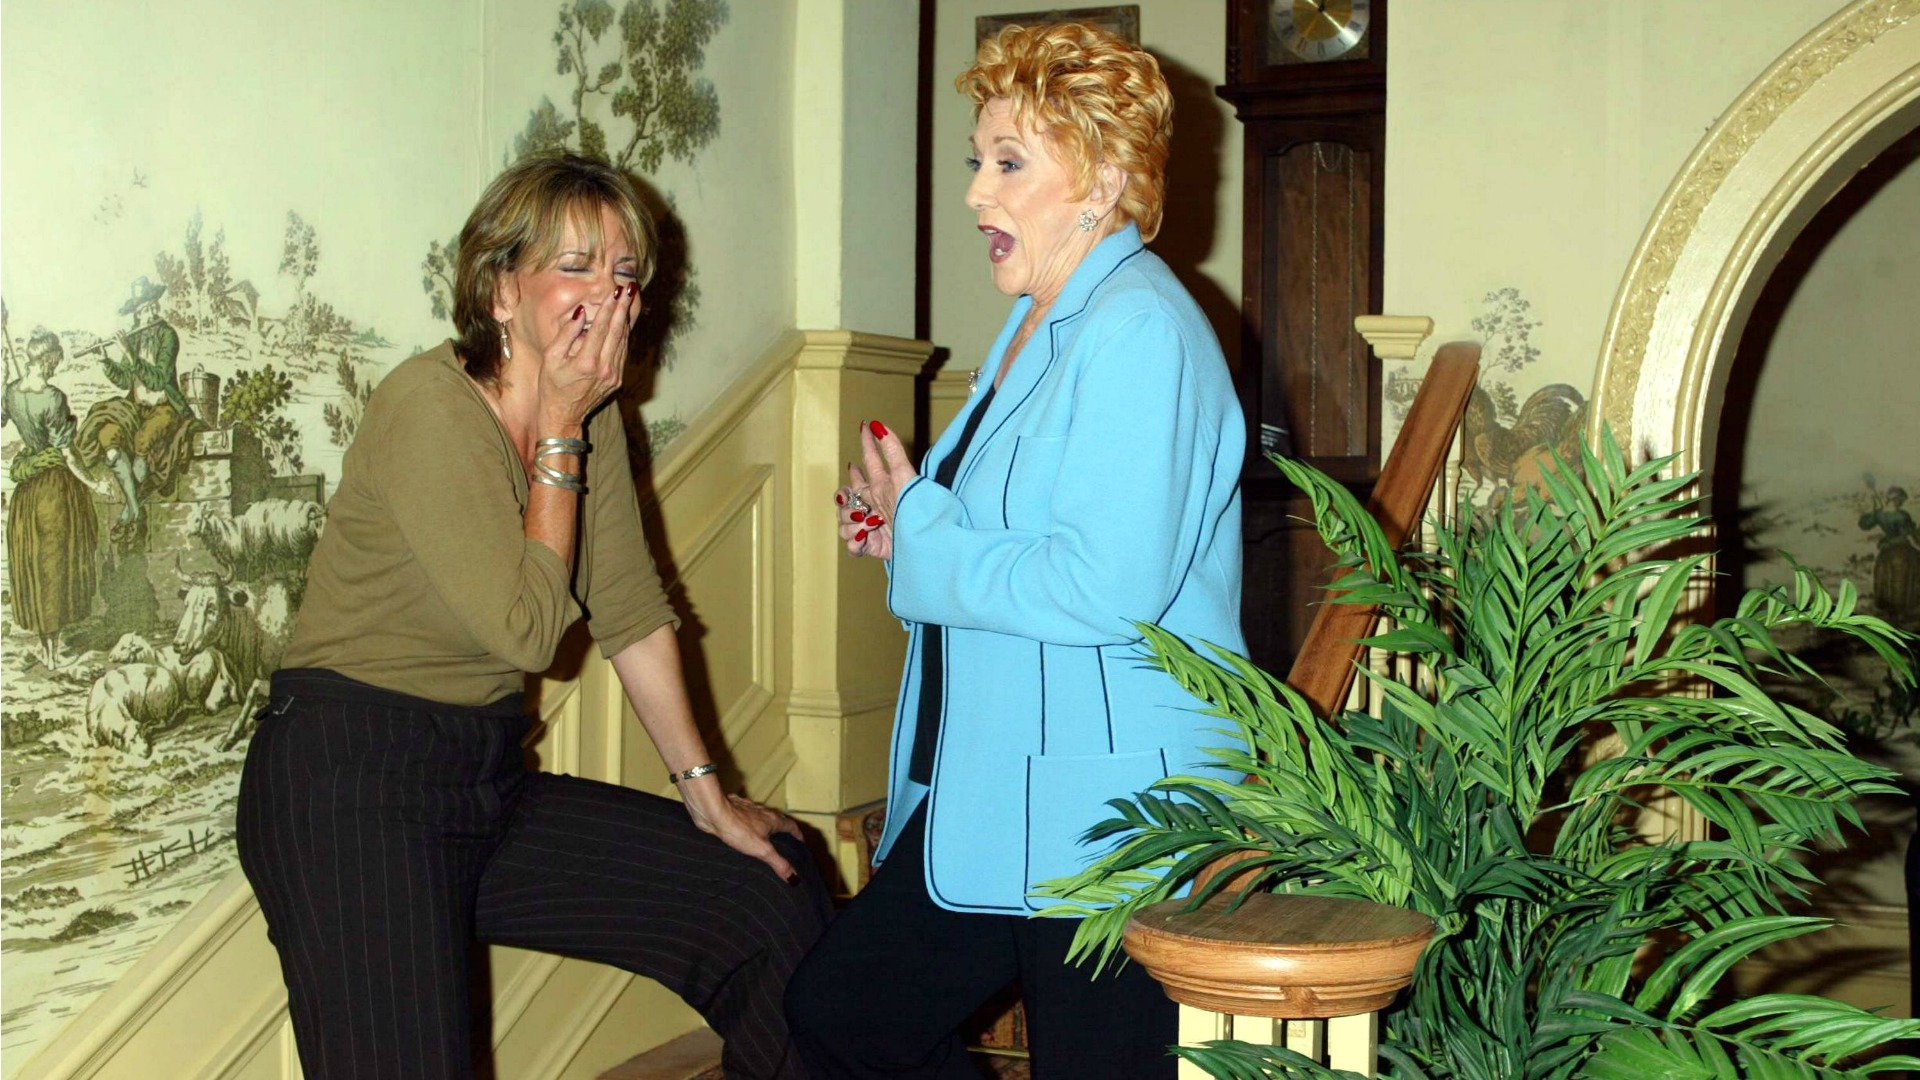 Jess Walton laughs at one of Jeanne Cooper's jokes.